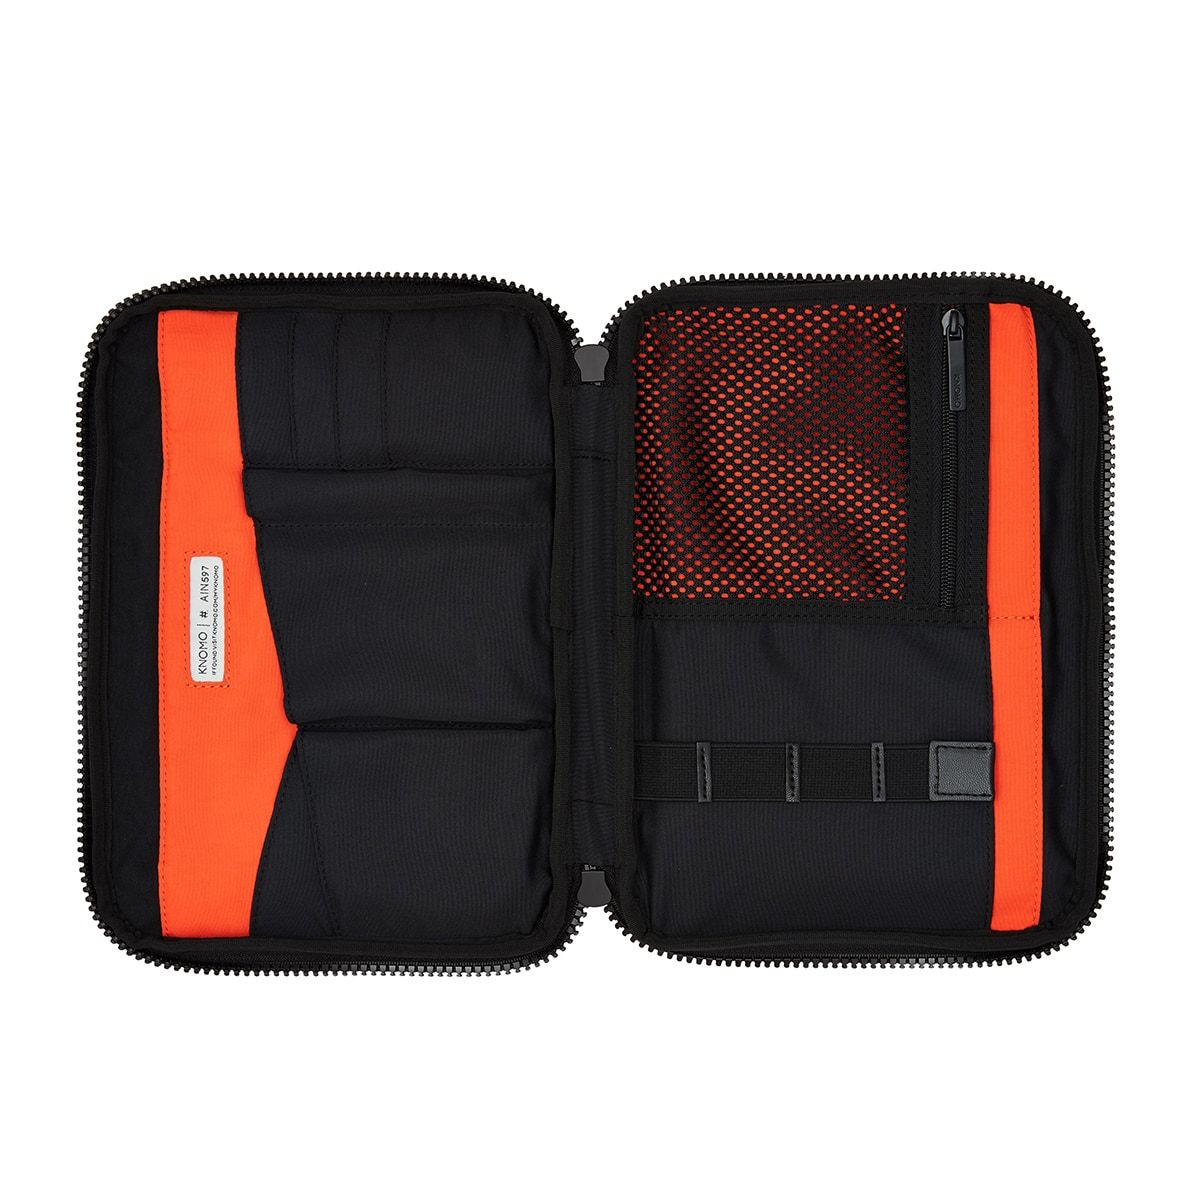 "KNOMO Thames Knomad Organiser Tech Organiser Internal View Empty 10.5"" -  Black 